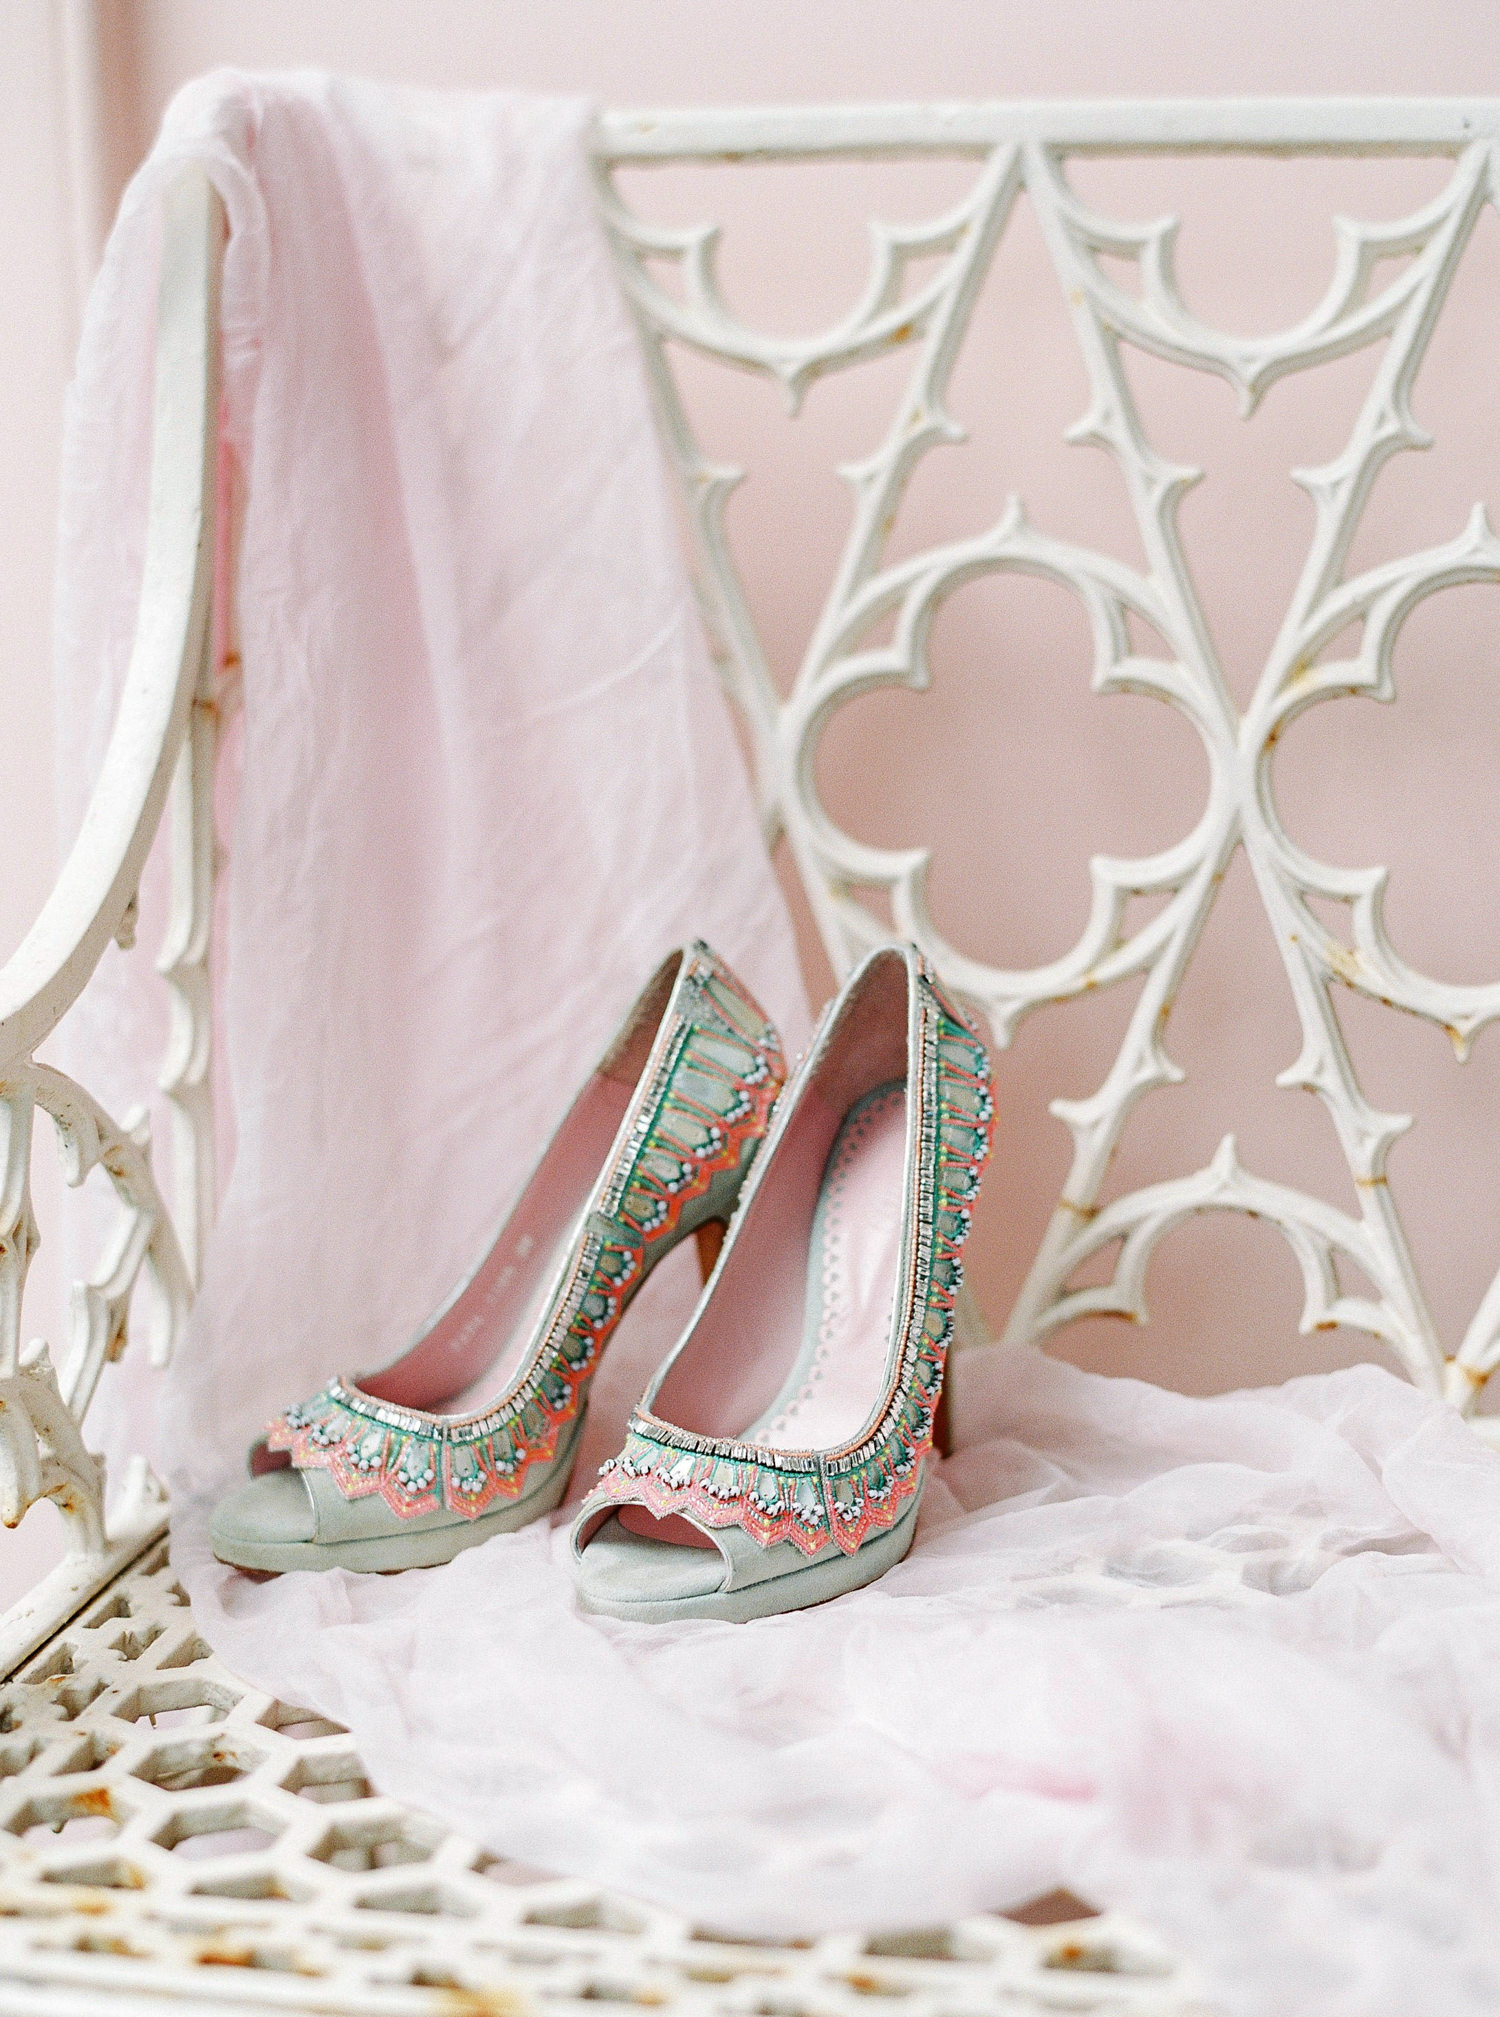 Emmy London, coloured wedding shoes